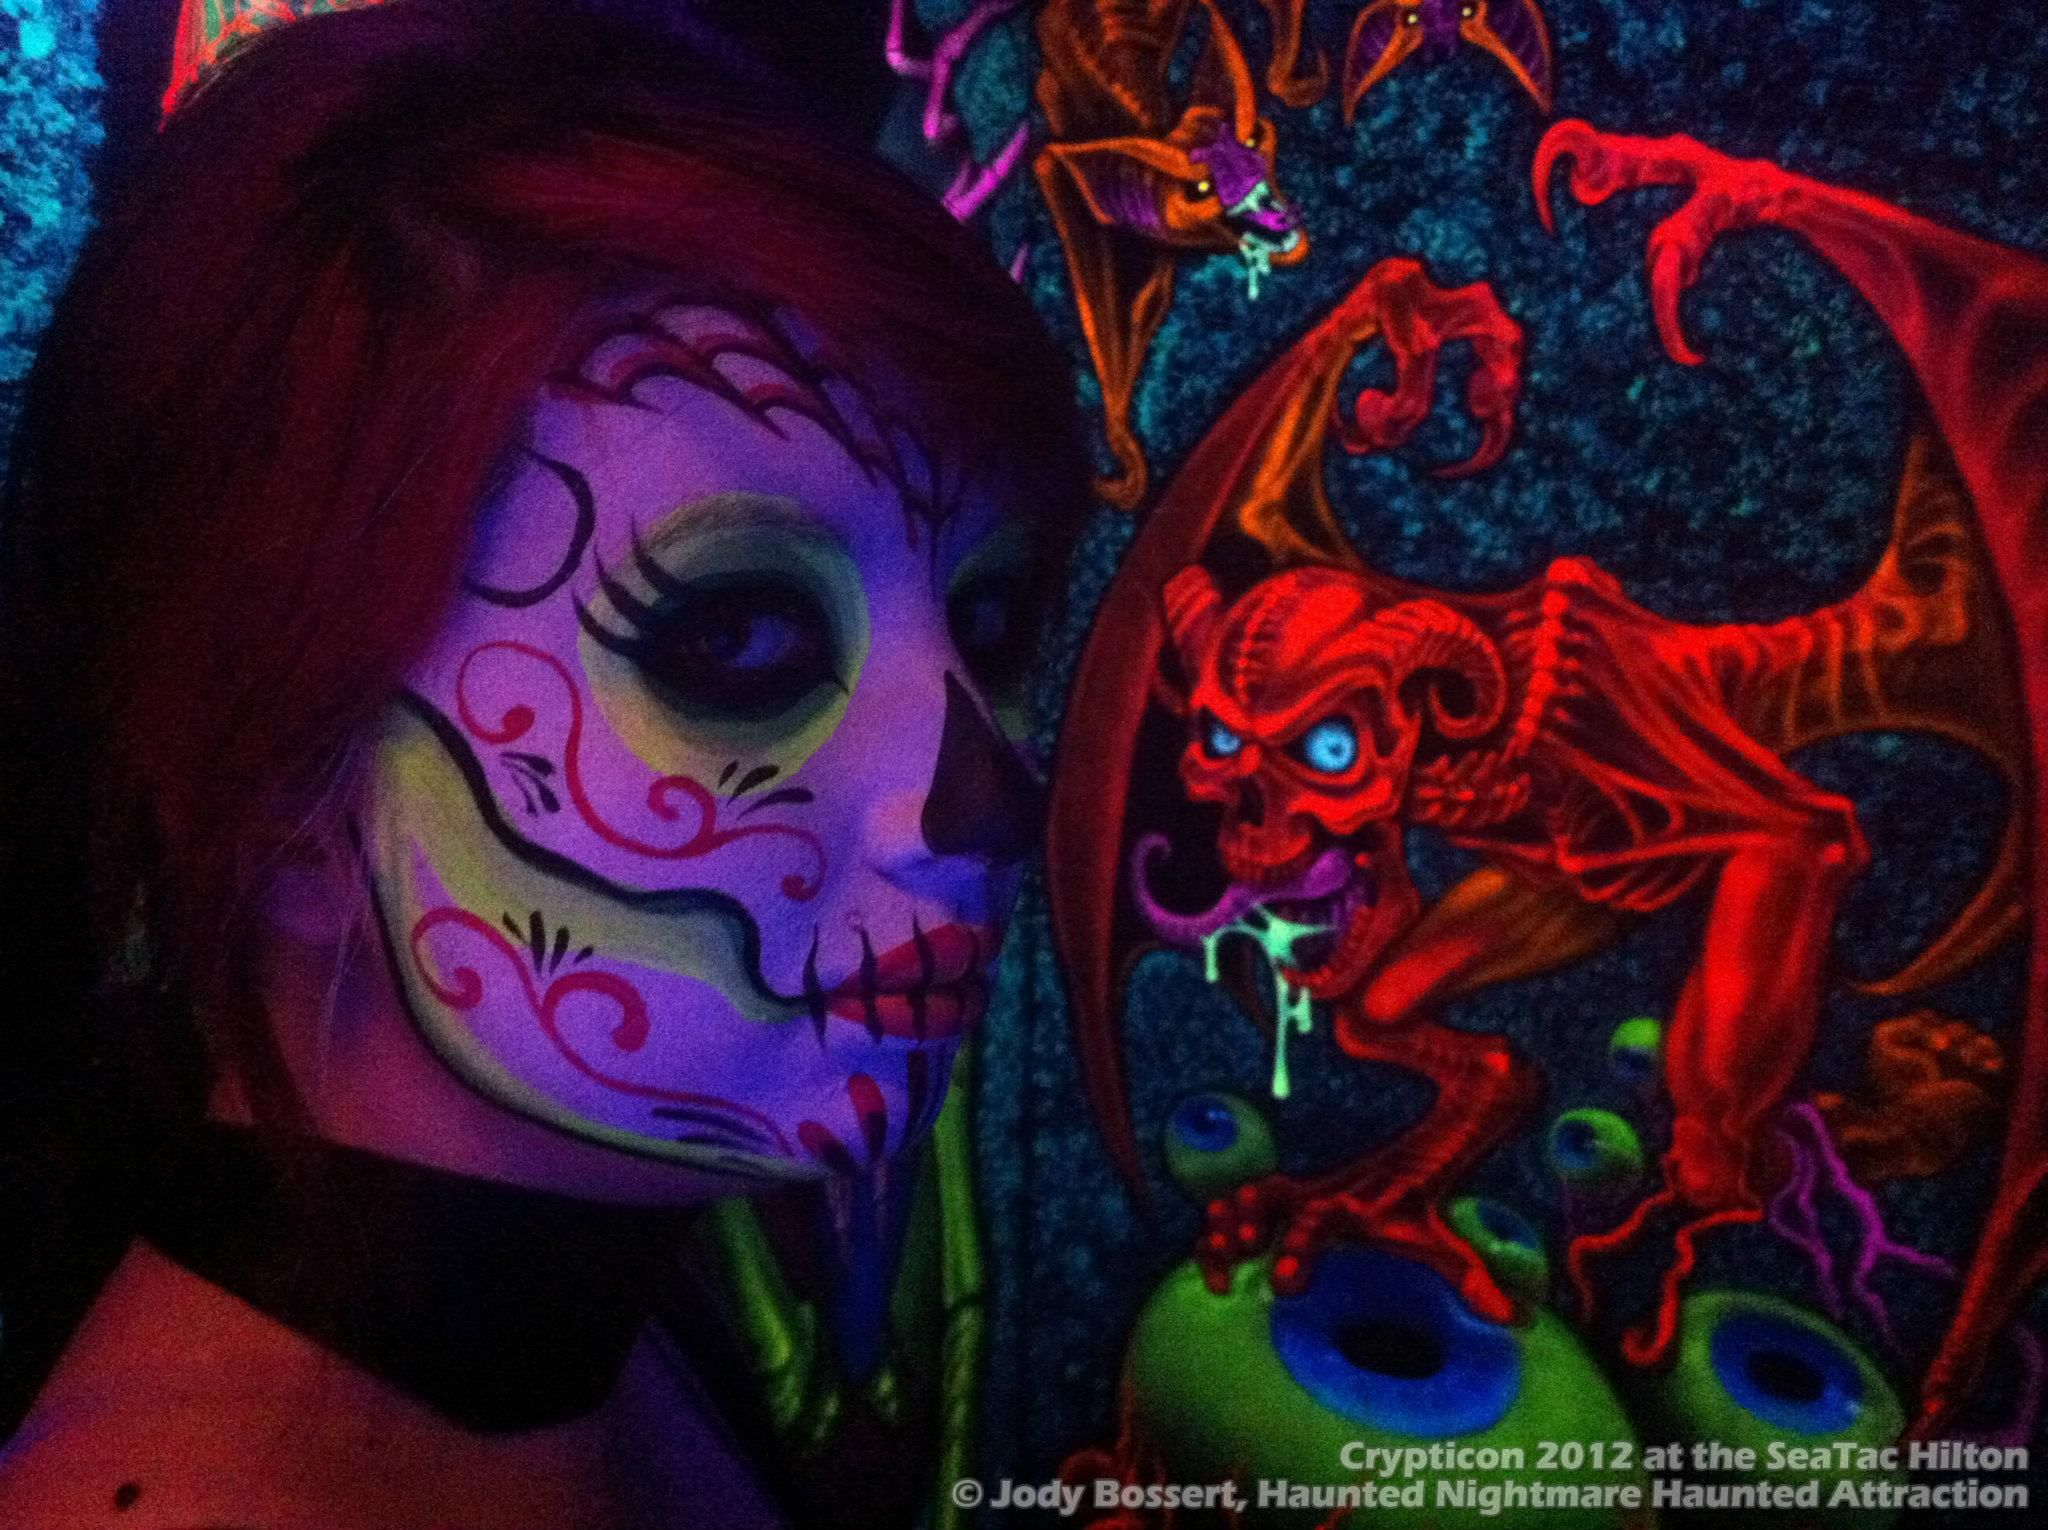 3D art and makeup by Dutch Bihary (Crypticon 2012 at the